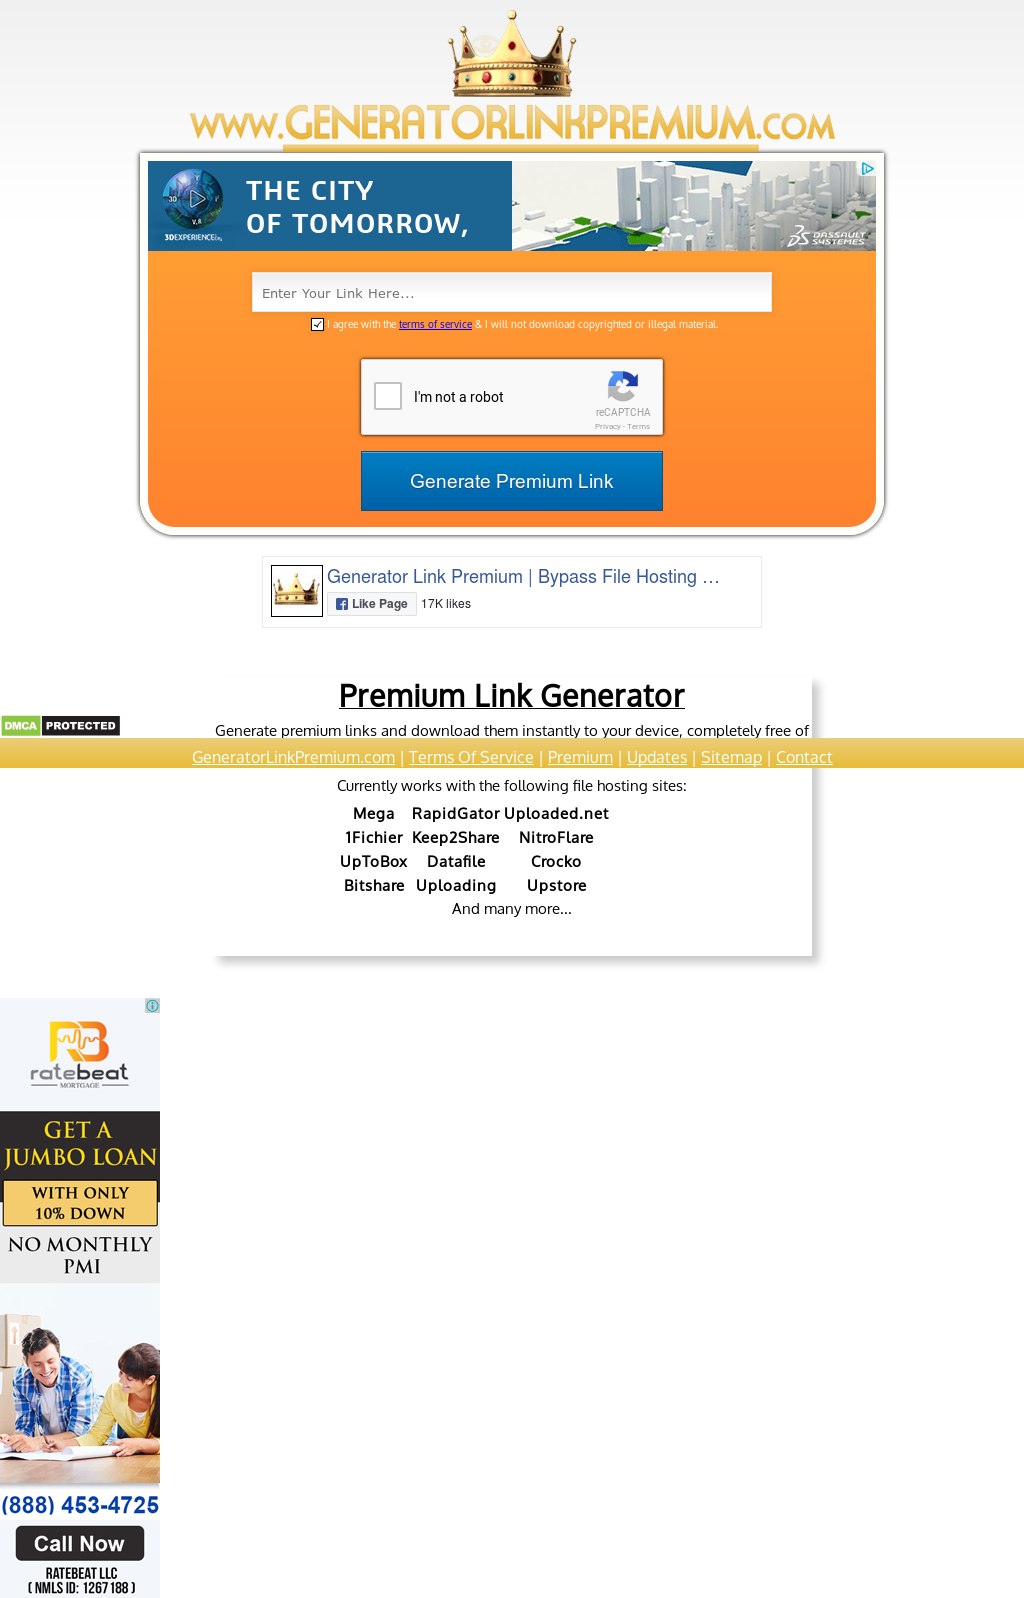 Generator Link Premium | Bypass File Hosting Companies